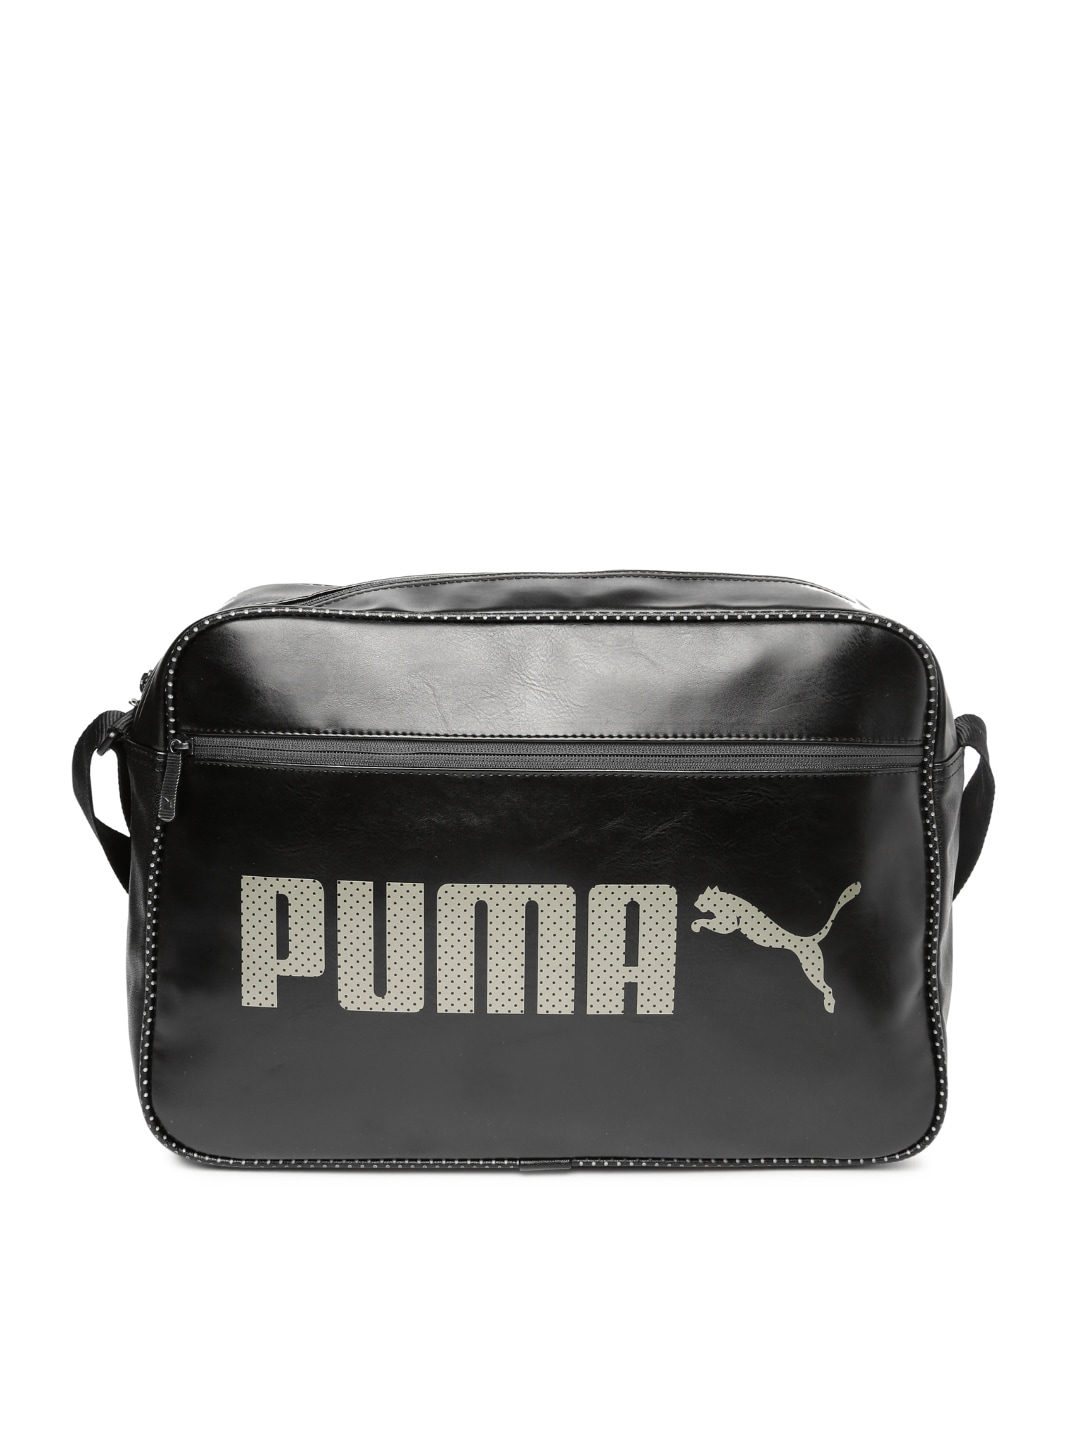 Puma Messenger Bag - Buy Puma Messenger Bag online in India 38e7bf07b2c99